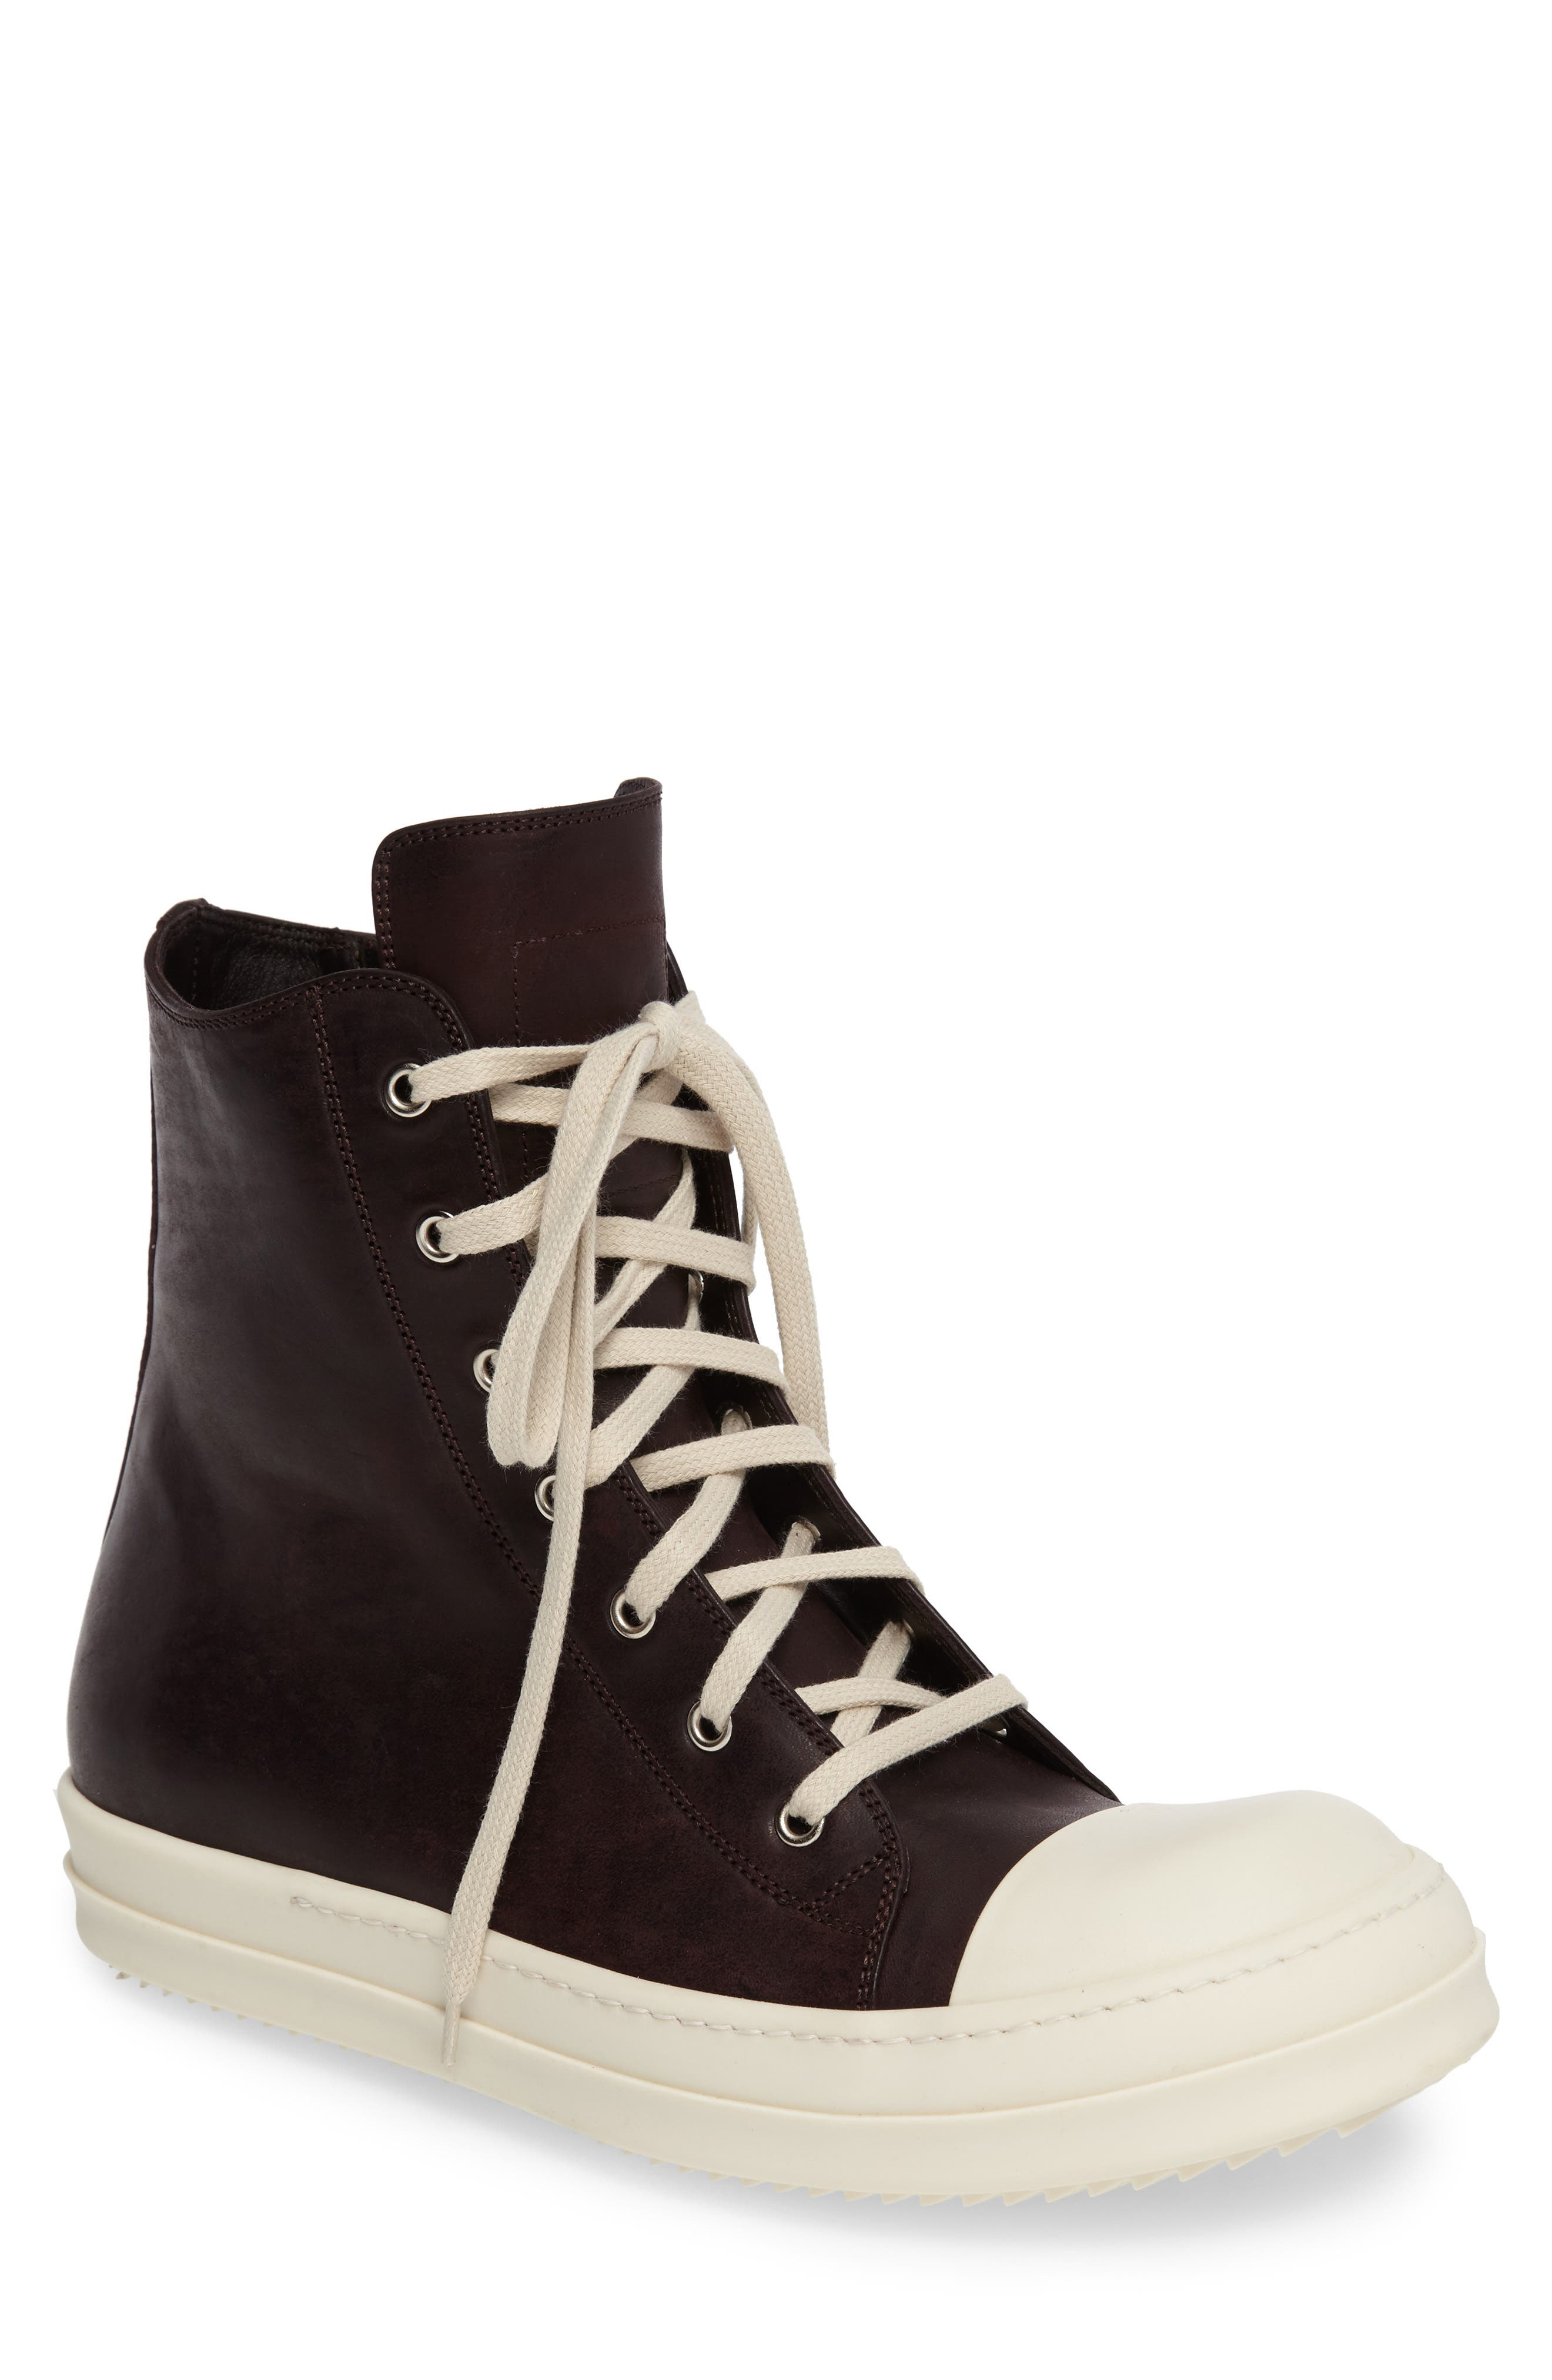 Rick Owens High Top Sneaker (Men)